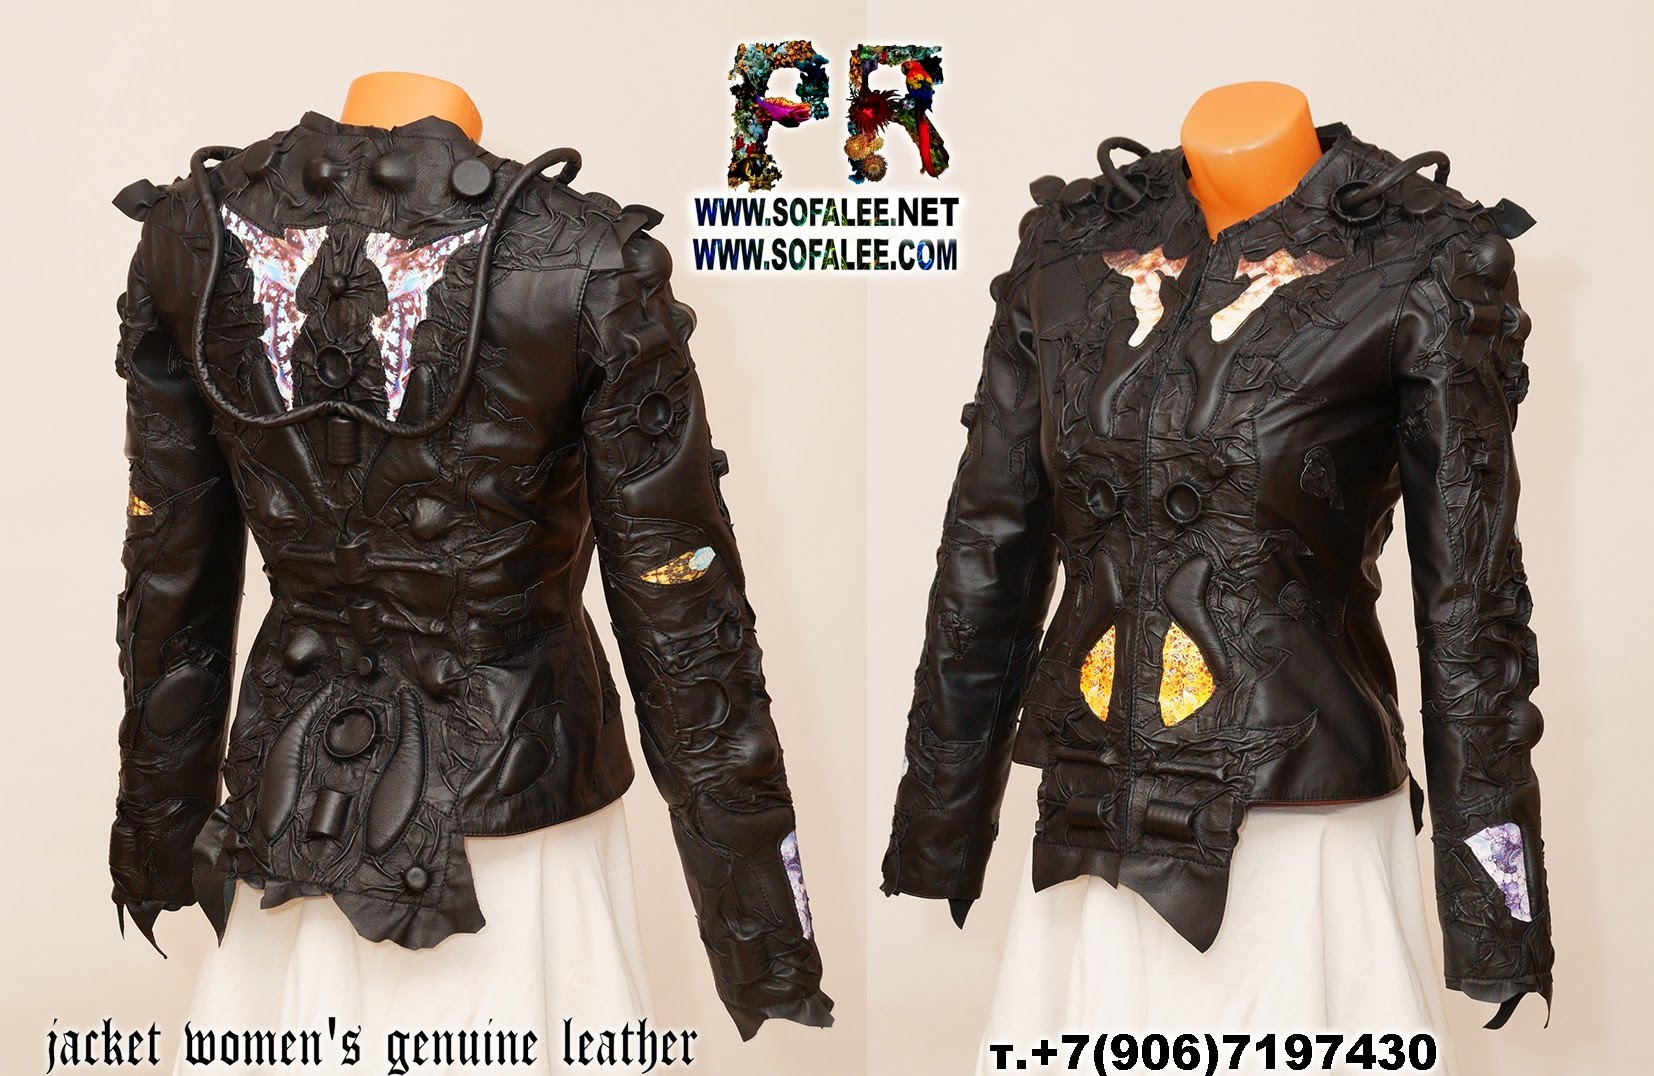 exclusive women's genuine leather jacket by sofalee 00000